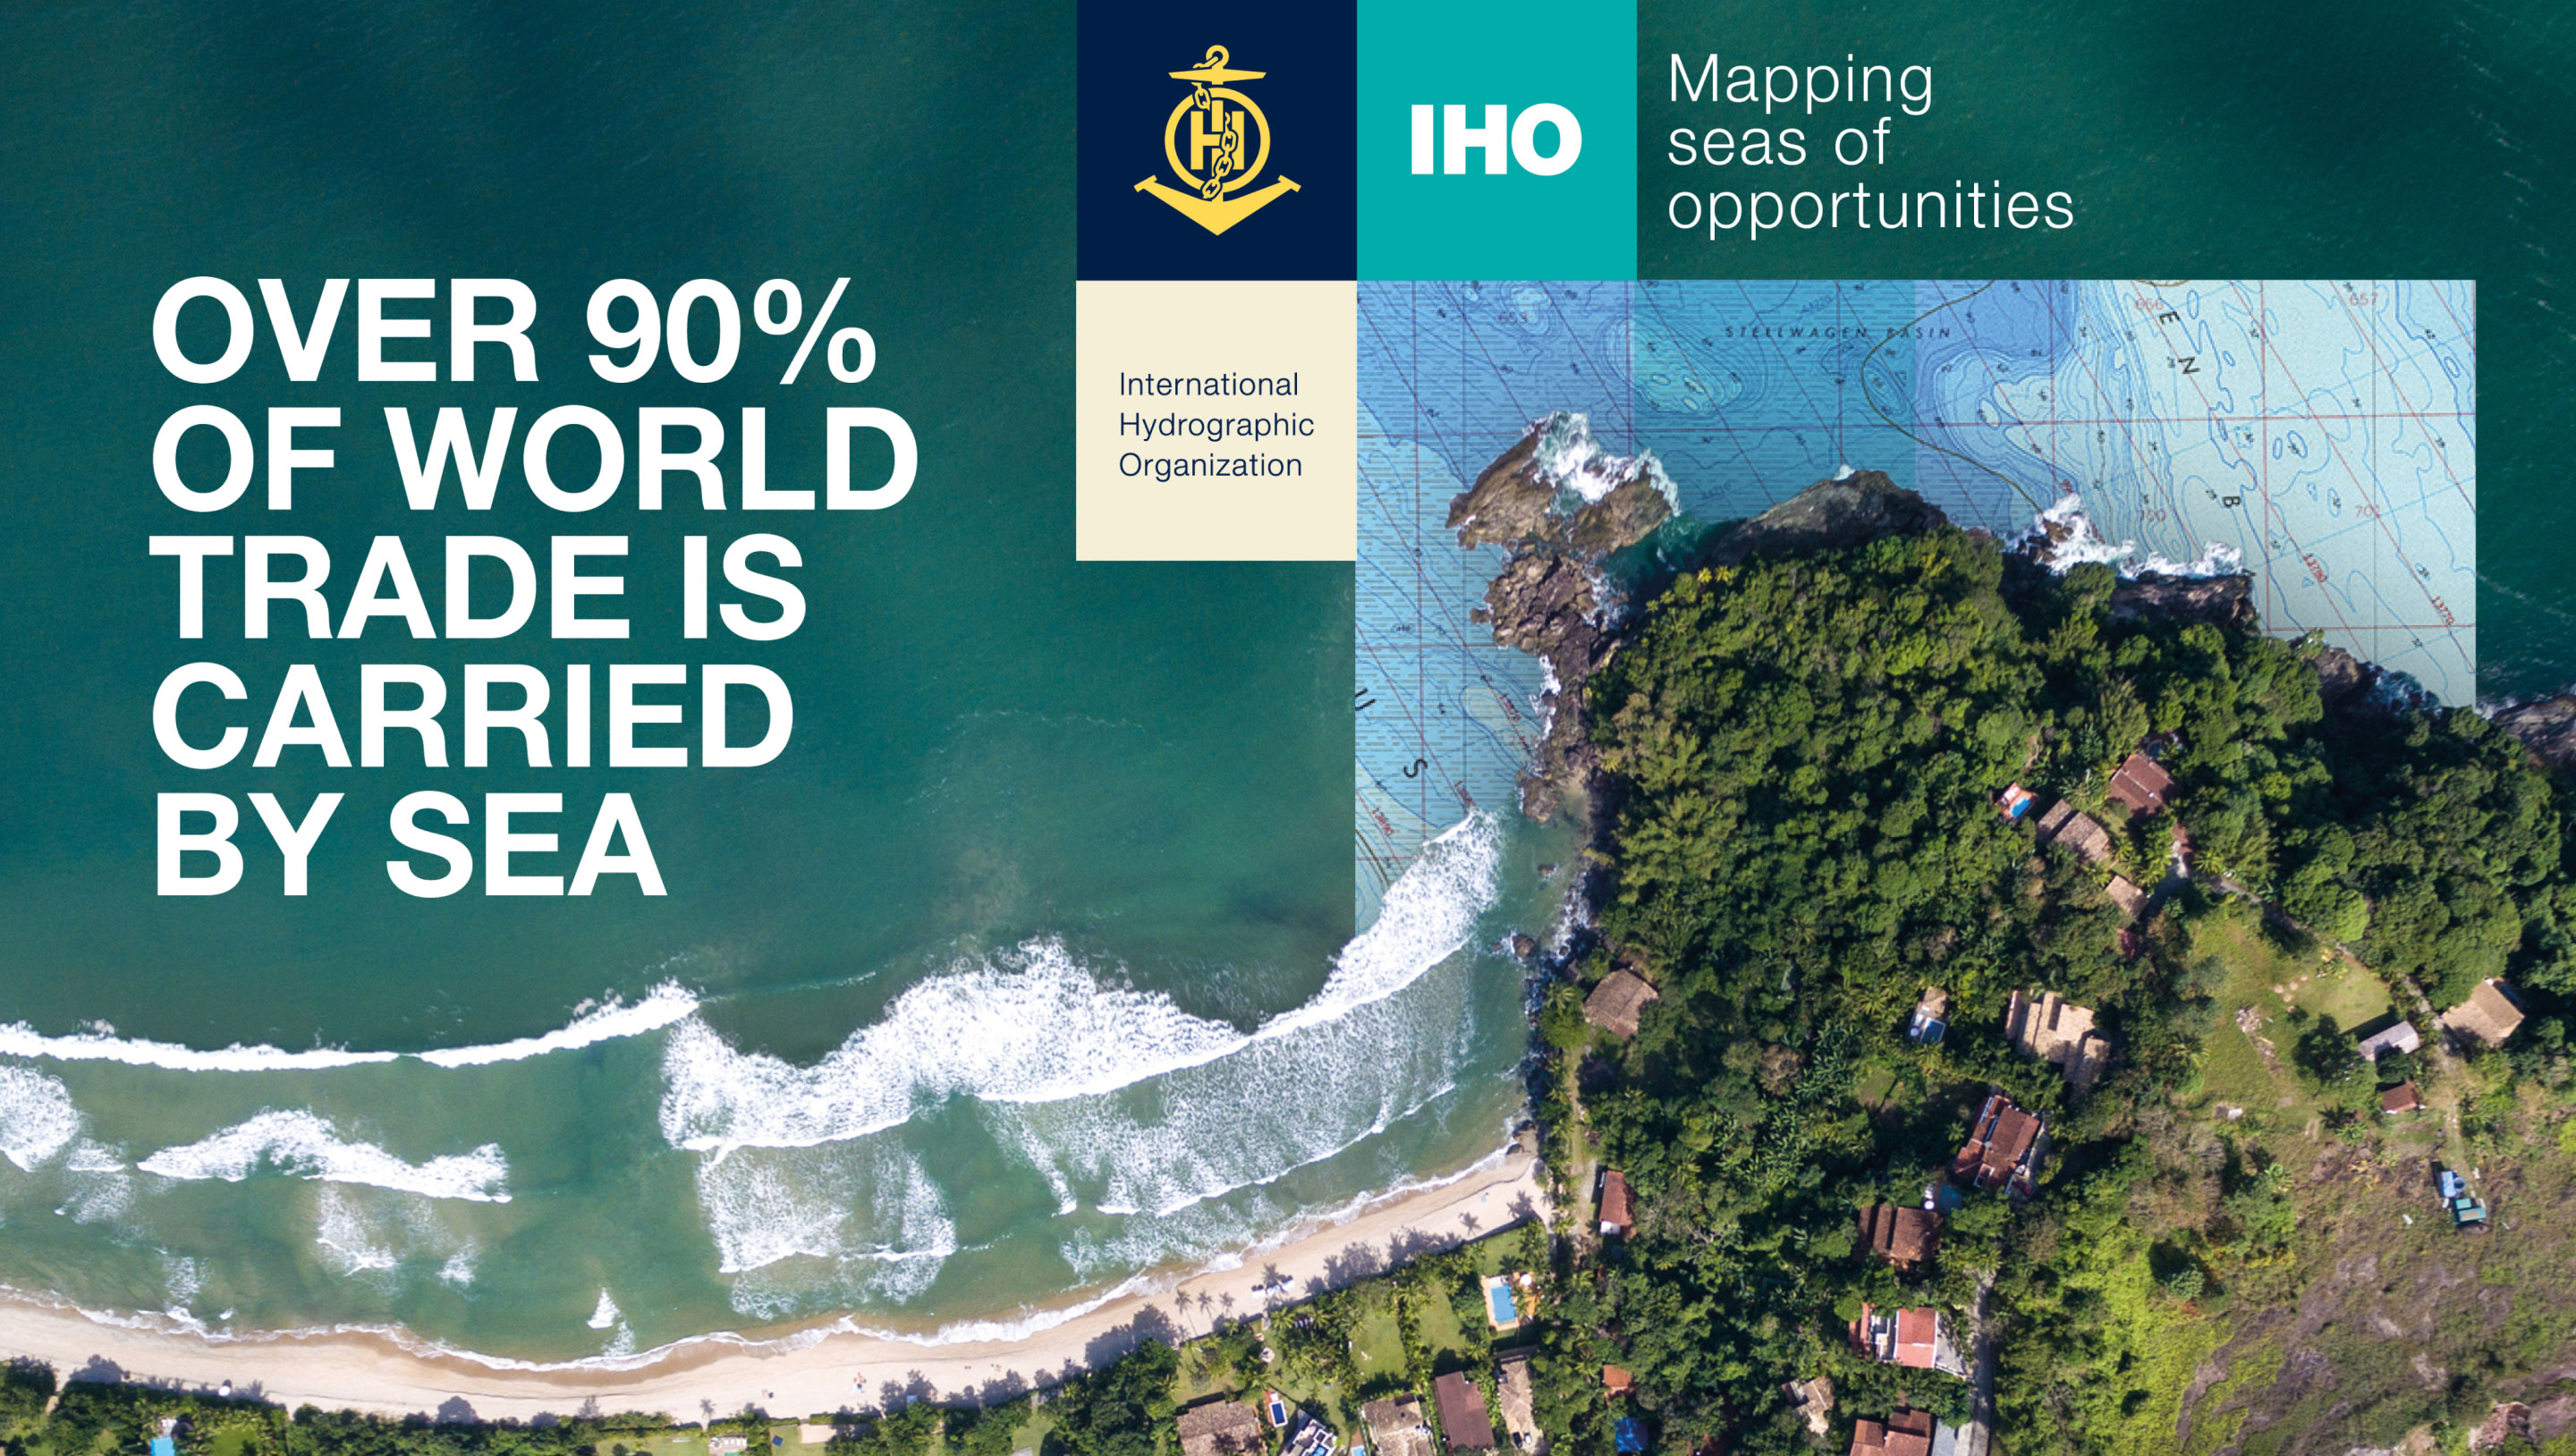 IHO - Mapping